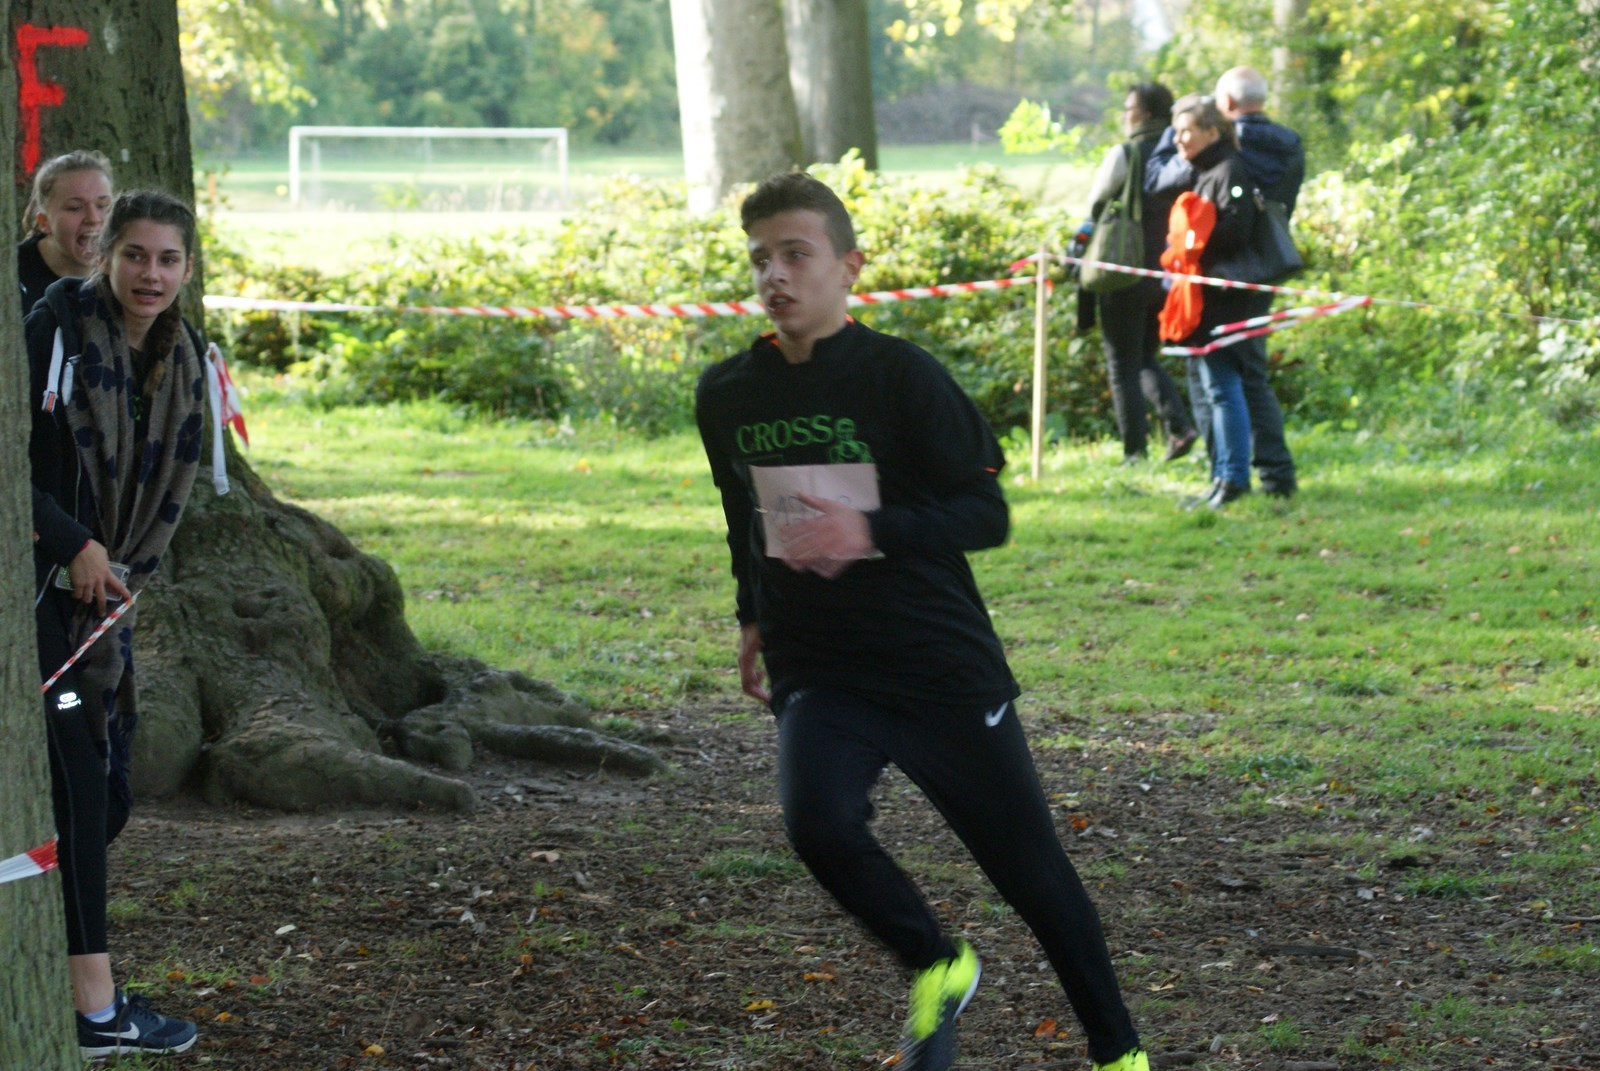 cross 11102017 Bouvigny 3